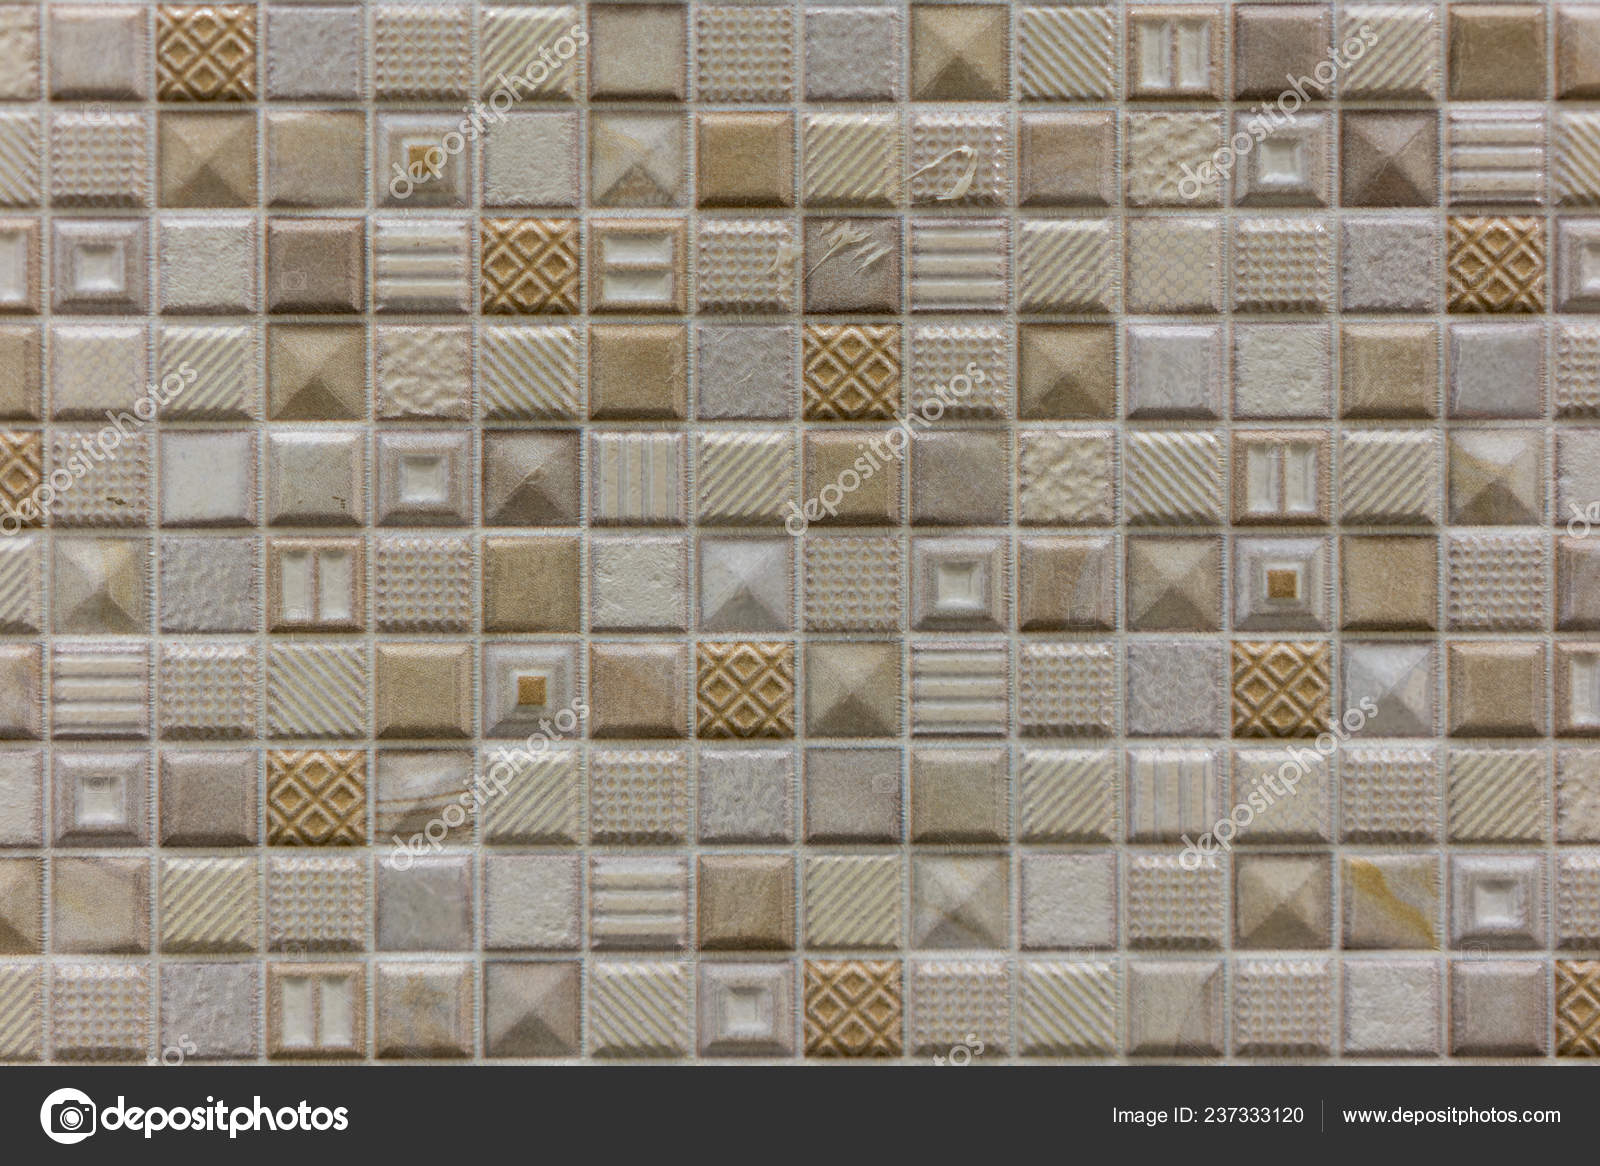 Ceramic Decorative Tiles Different Textures Covering Walls Floor Kitchen Bathroom Stock Photo C Colt Kiev Mail Ru 237333120